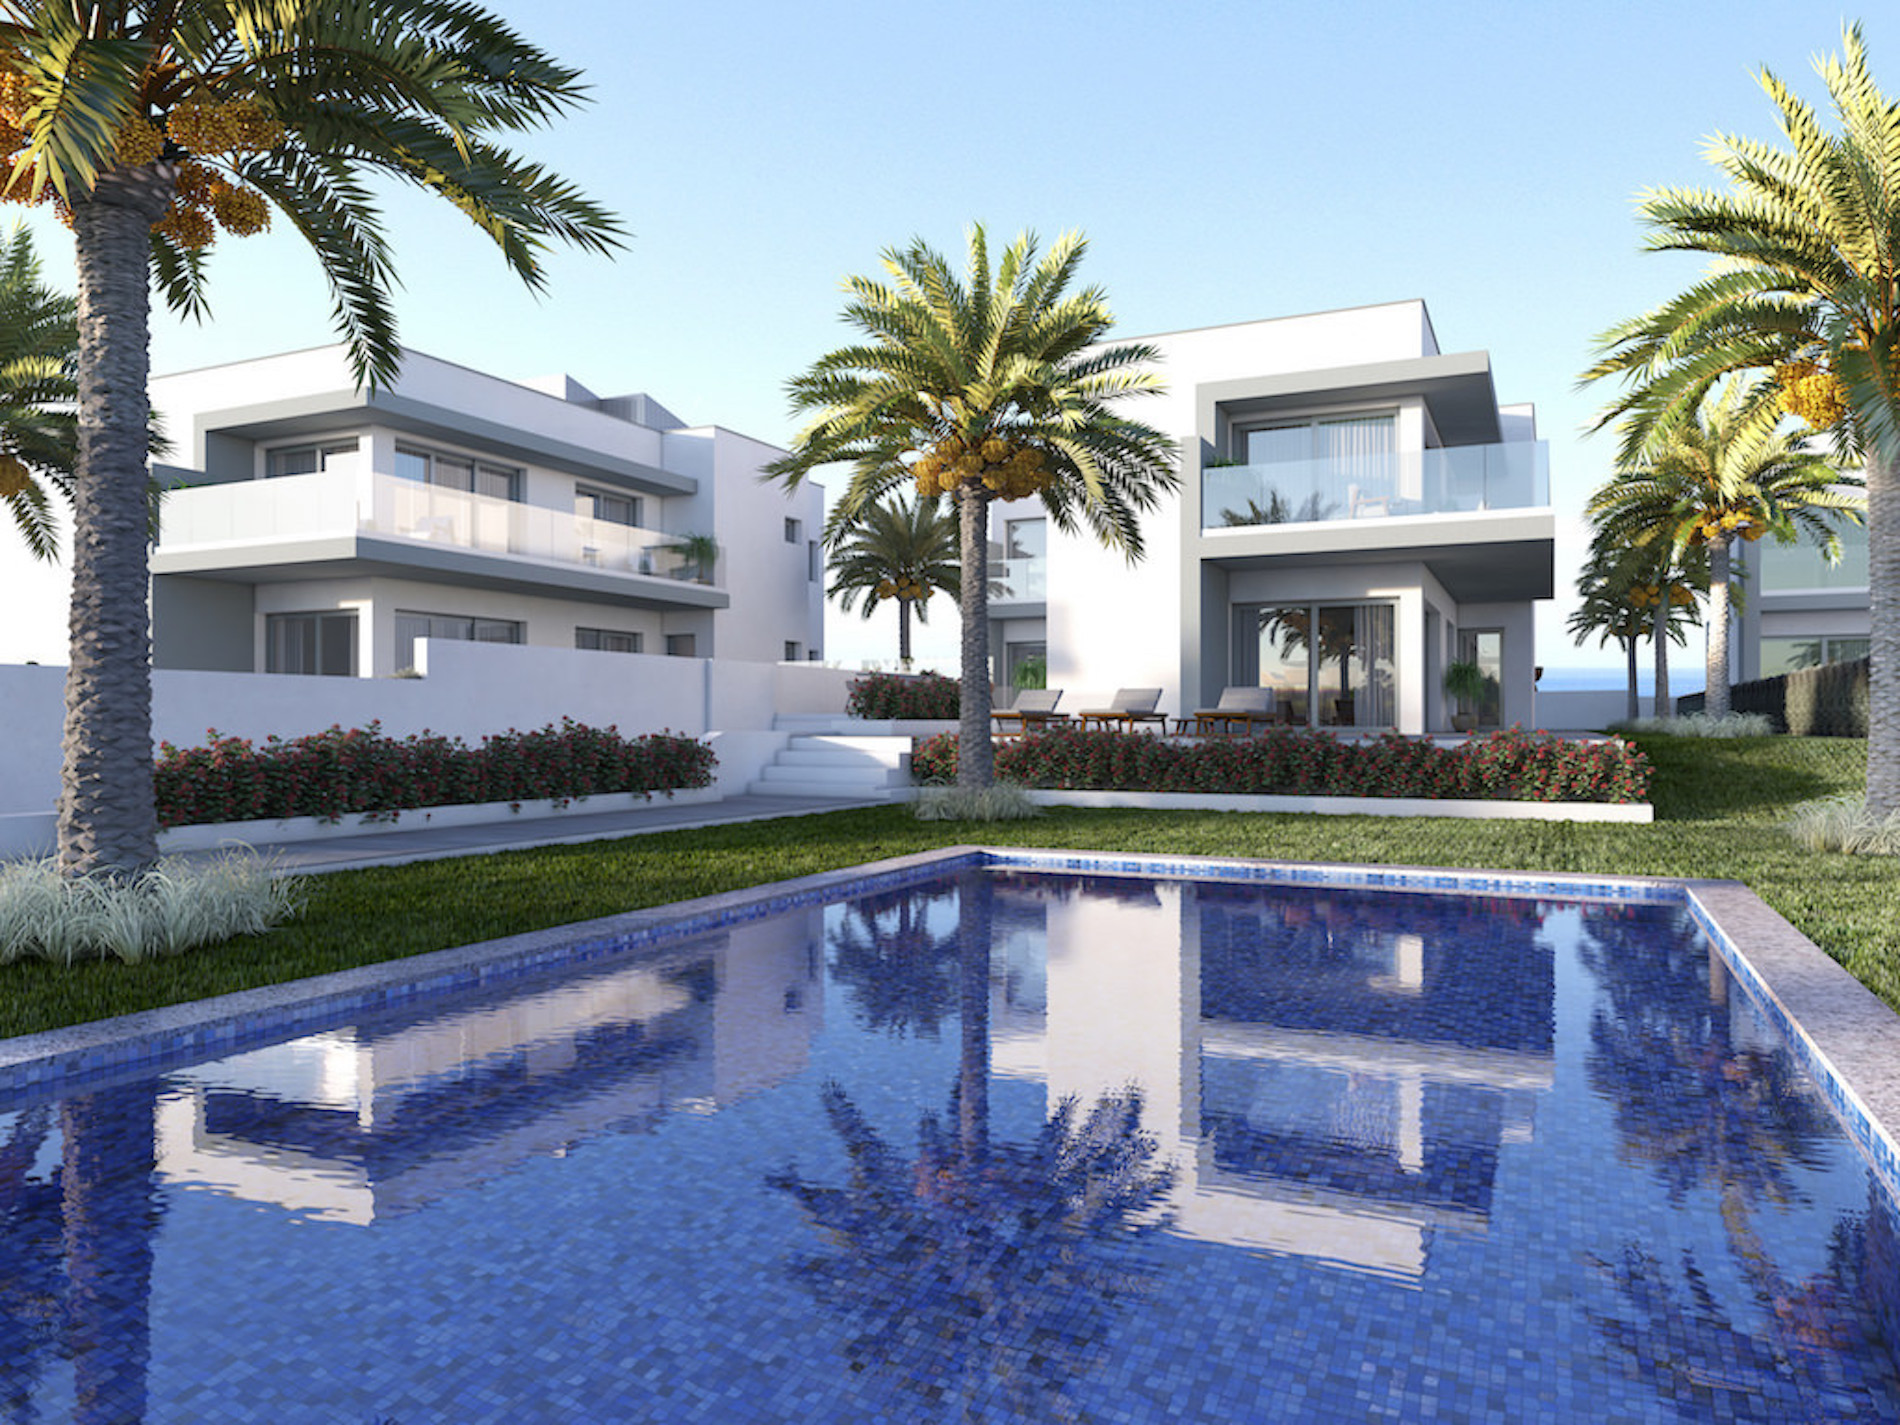 4 Bedroom Villa with sea views in the West Coast